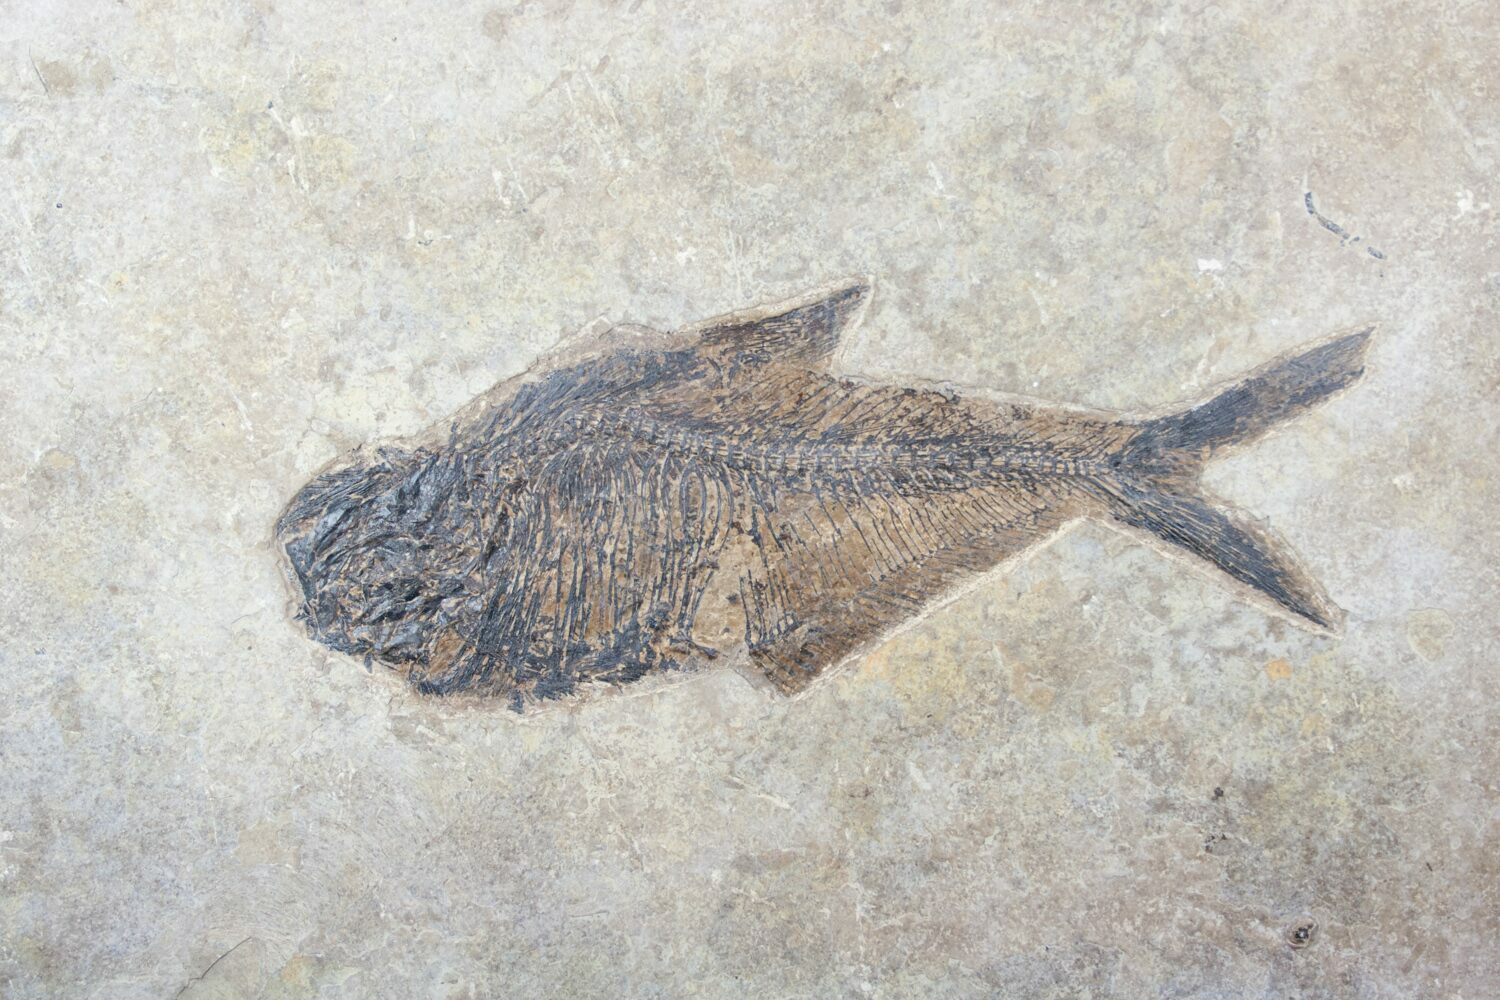 Large 10 5 diplomystus fossil fish frameable for sale for Fish fossils for sale